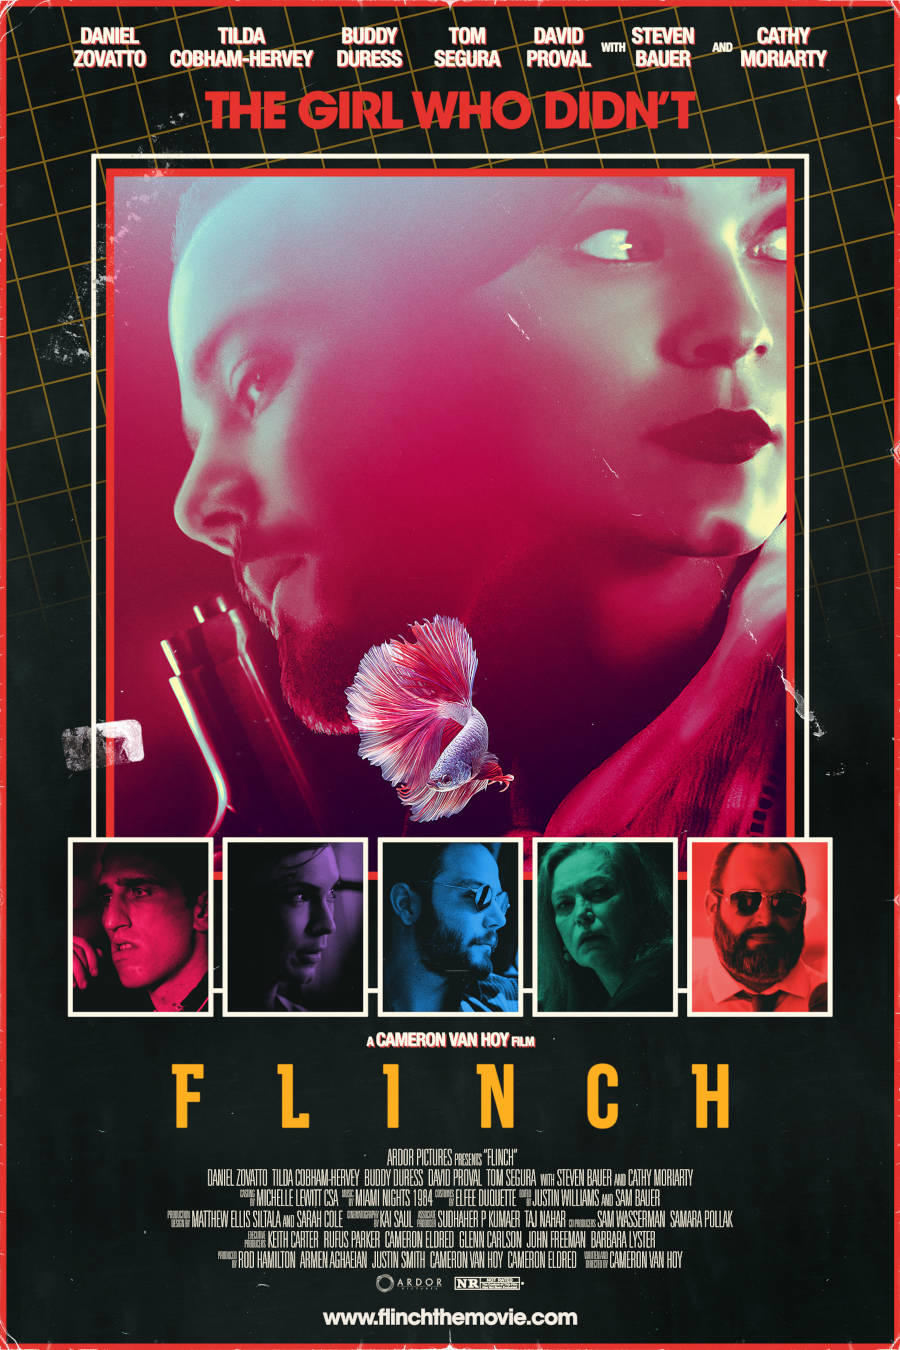 Flinch poster art